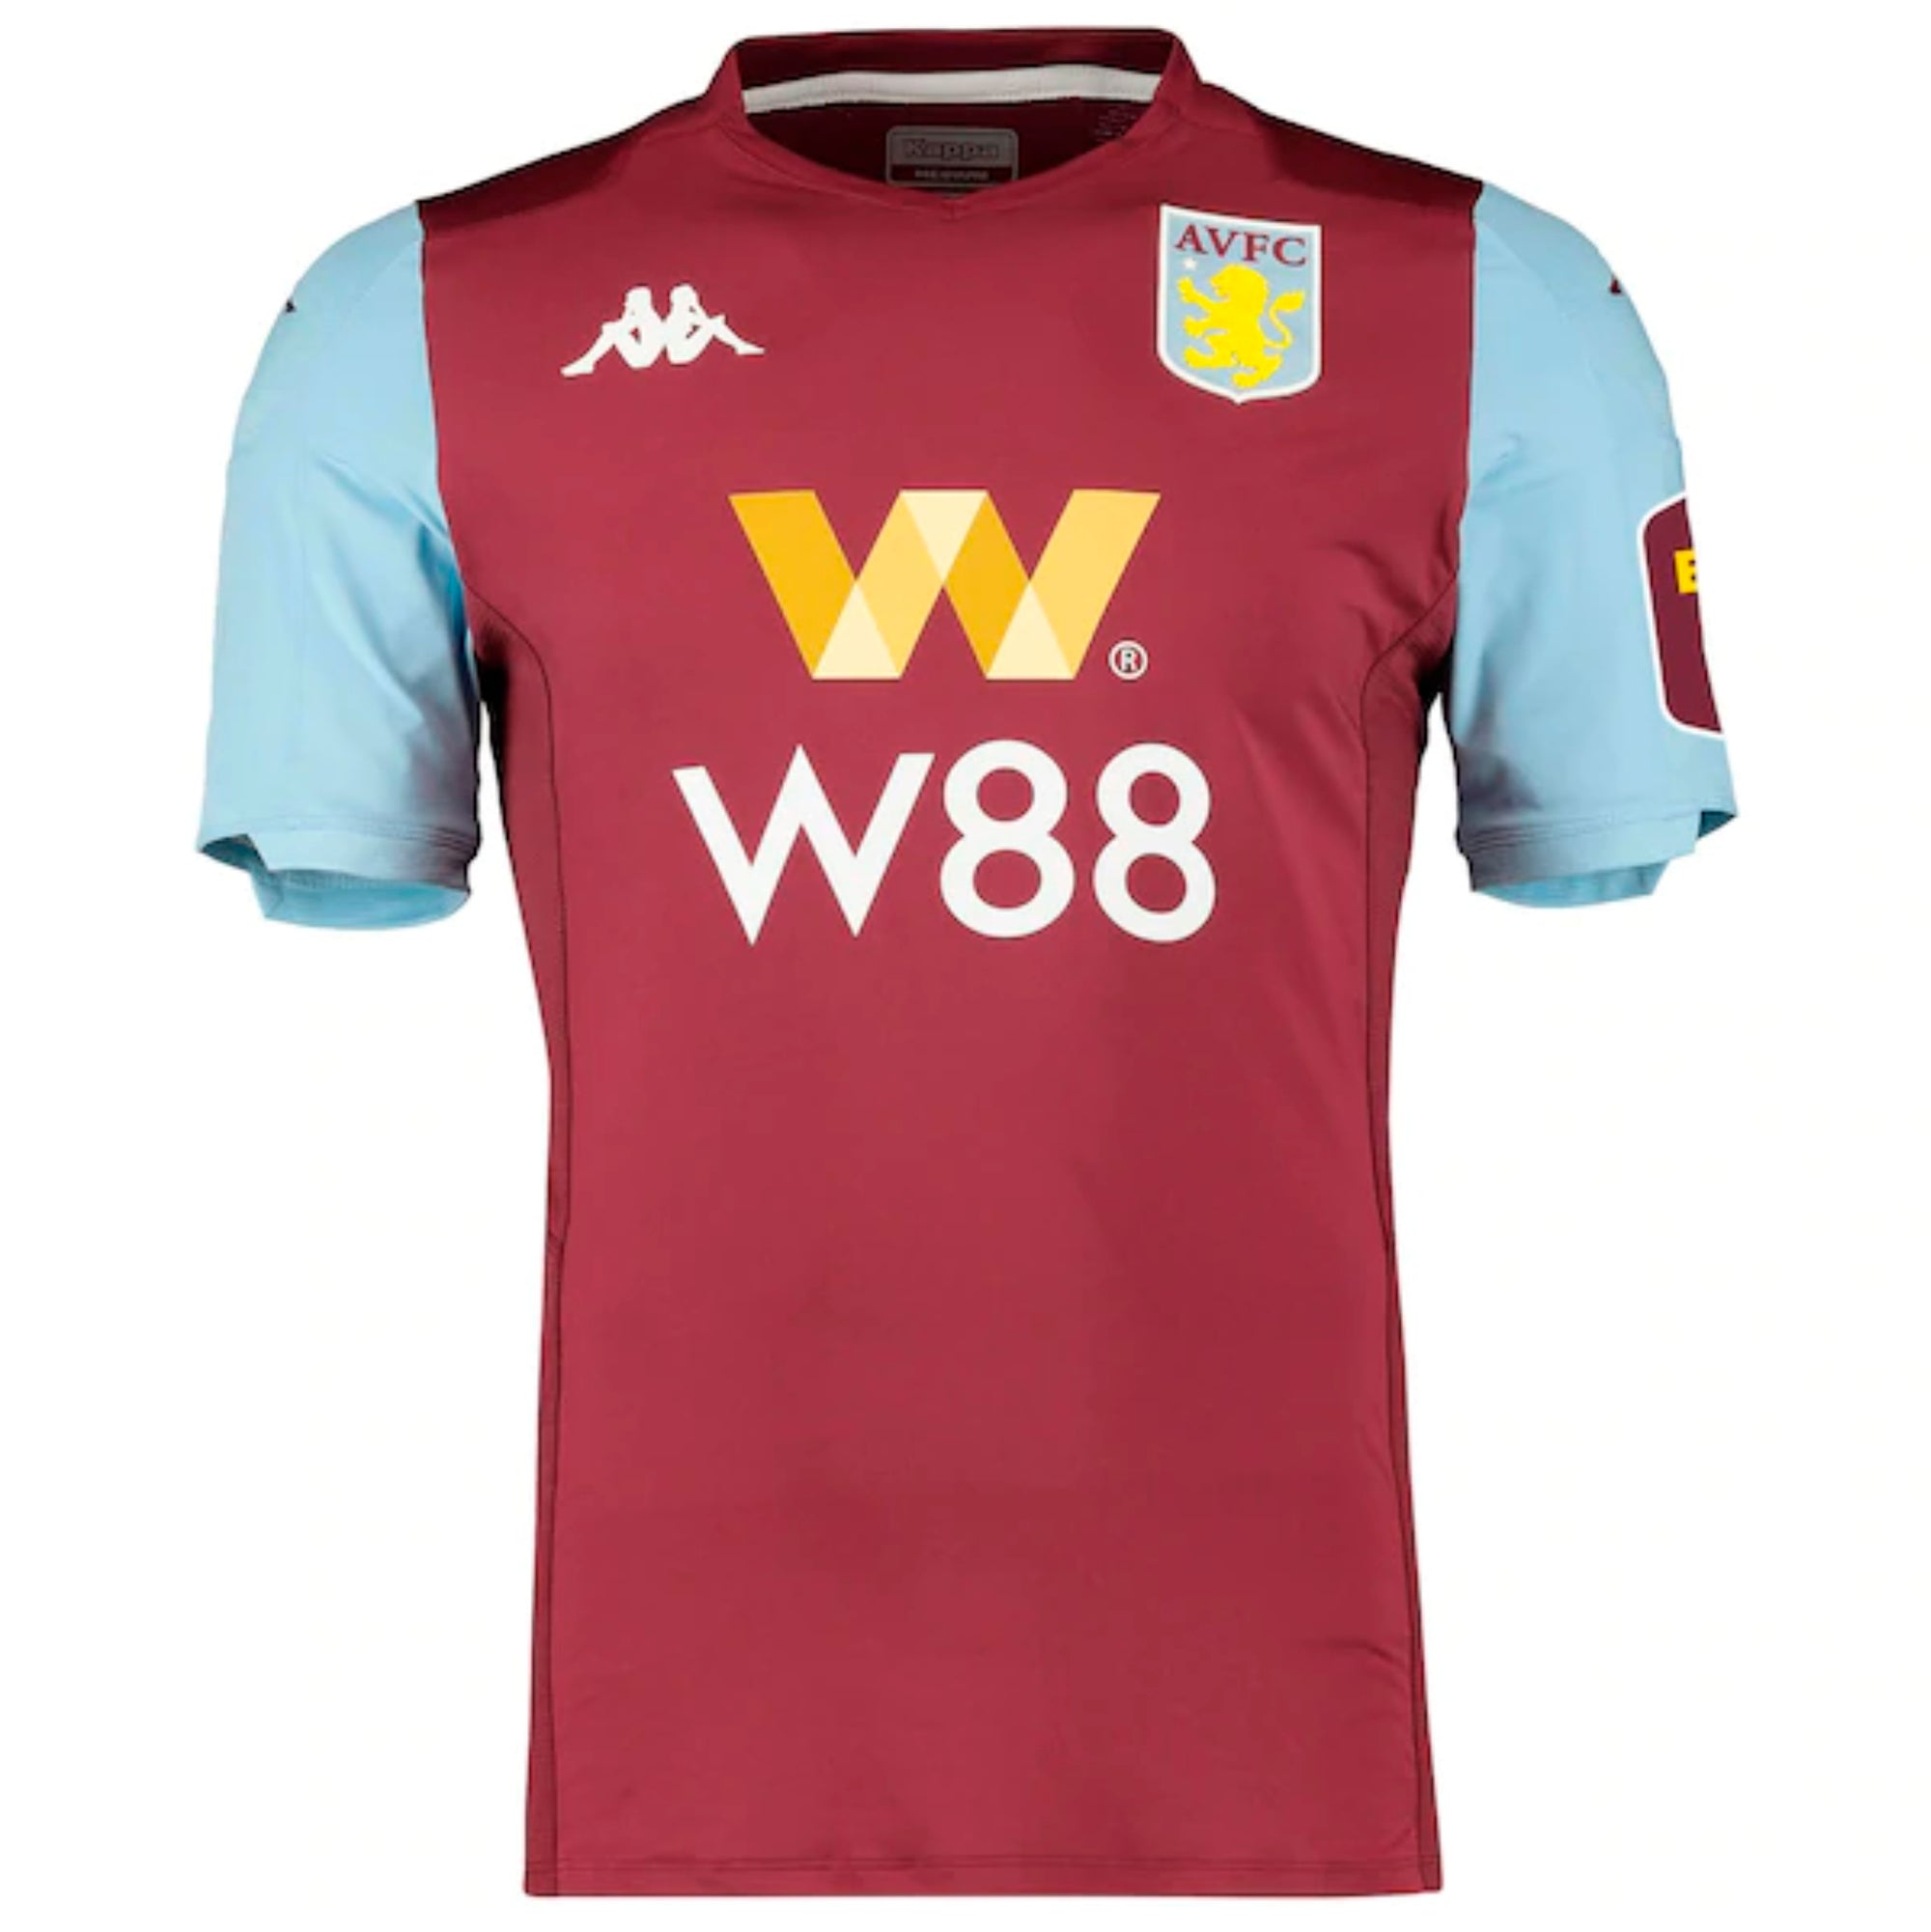 Aston Villa professional home shirt in claret and sky